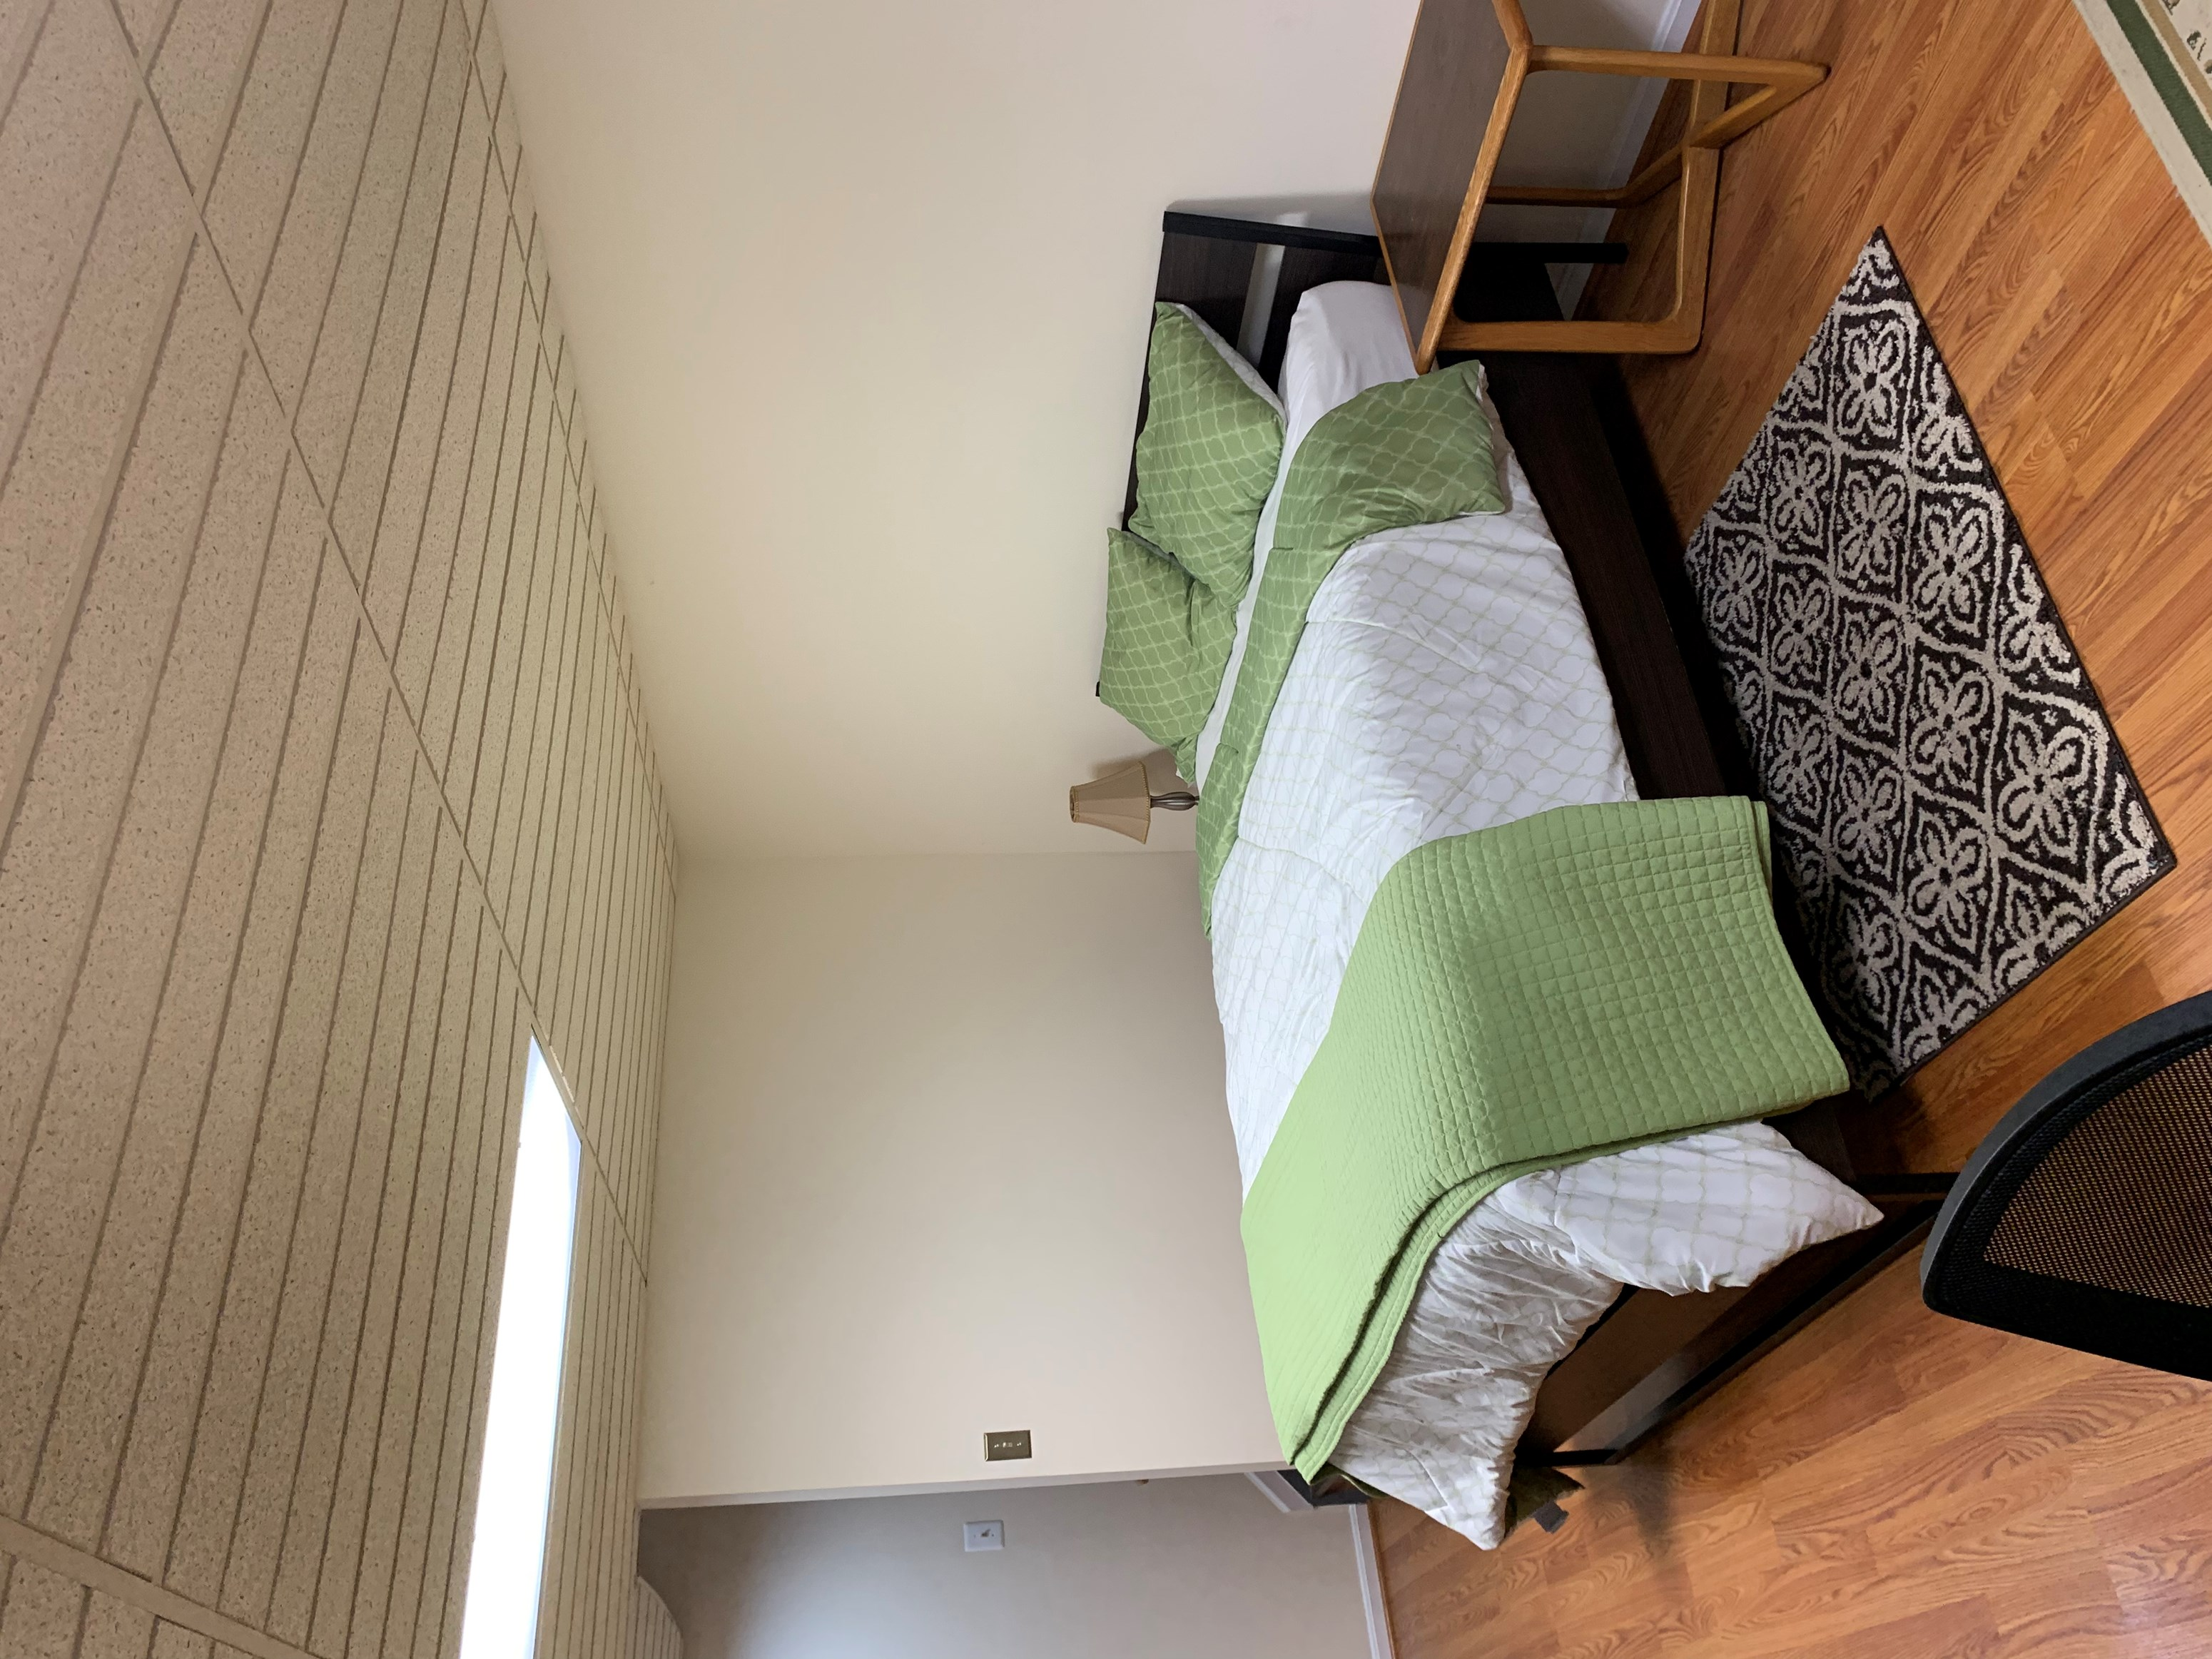 Rooms for Rent Reston, VA – Apartments, House, Commercial